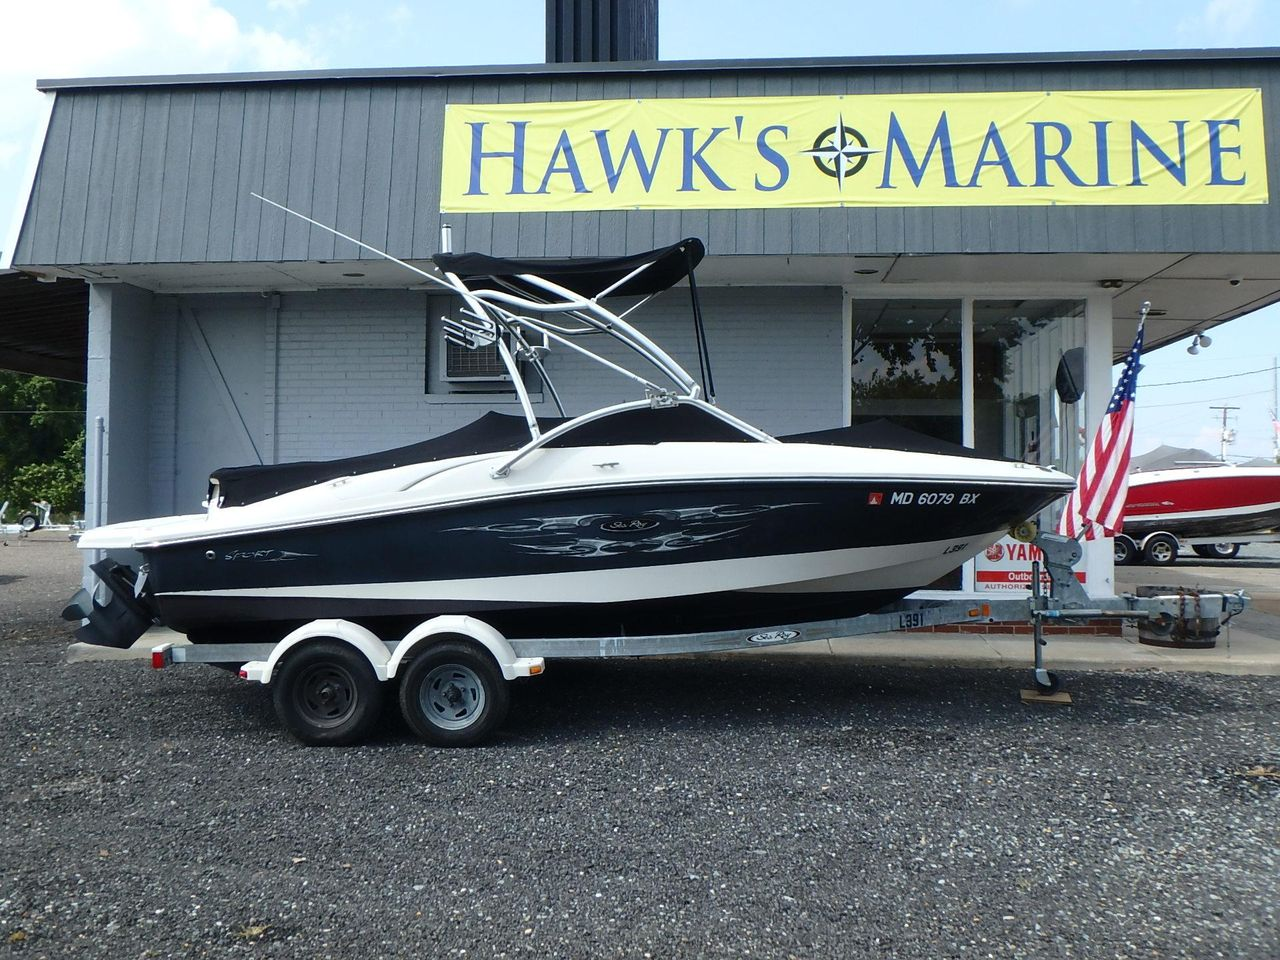 2006 Used Sea Ray 205 Sport Bowrider Boat For Sale - $19,995